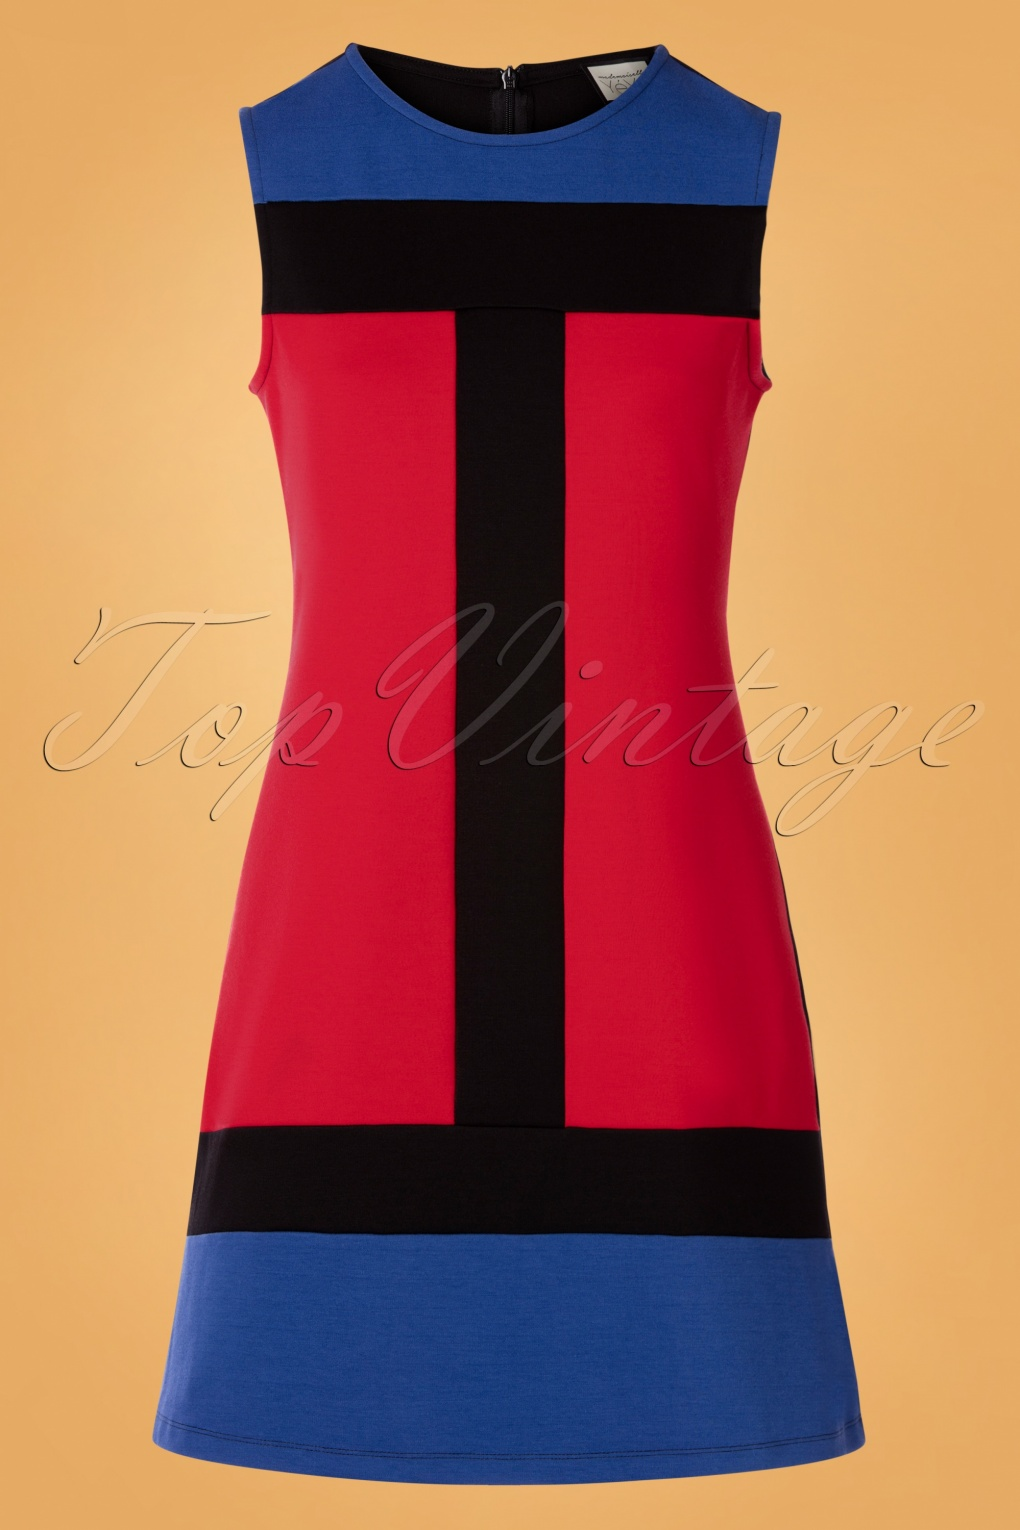 1960s Style Dresses, Clothing, Shoes UK 60s Eve Saint Florence Dress in Red and Blue £83.10 AT vintagedancer.com